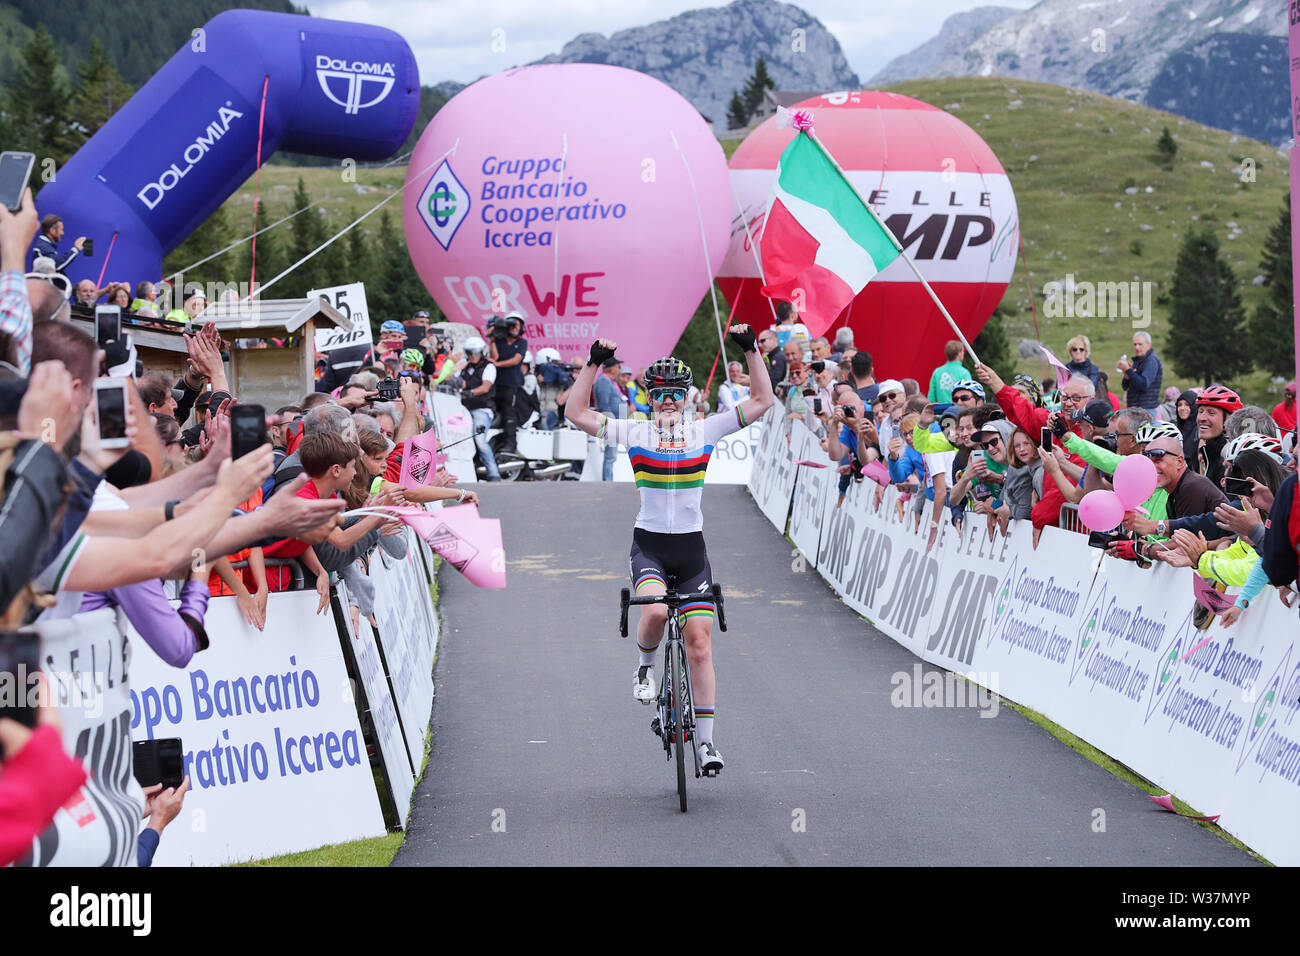 Chiusaforte, Italy. 13th July, 2019.Chiusaforte/Malga Montasio - 13-07-2019, cycling, Stage 9, etappe 9 Gemona - Chiusaforte/Malga Montasio, giro rosa, Anna van der Breggen wins the 9th stage of the Giro Rosa Credit: Pro Shots/Alamy Live News - Stock Image